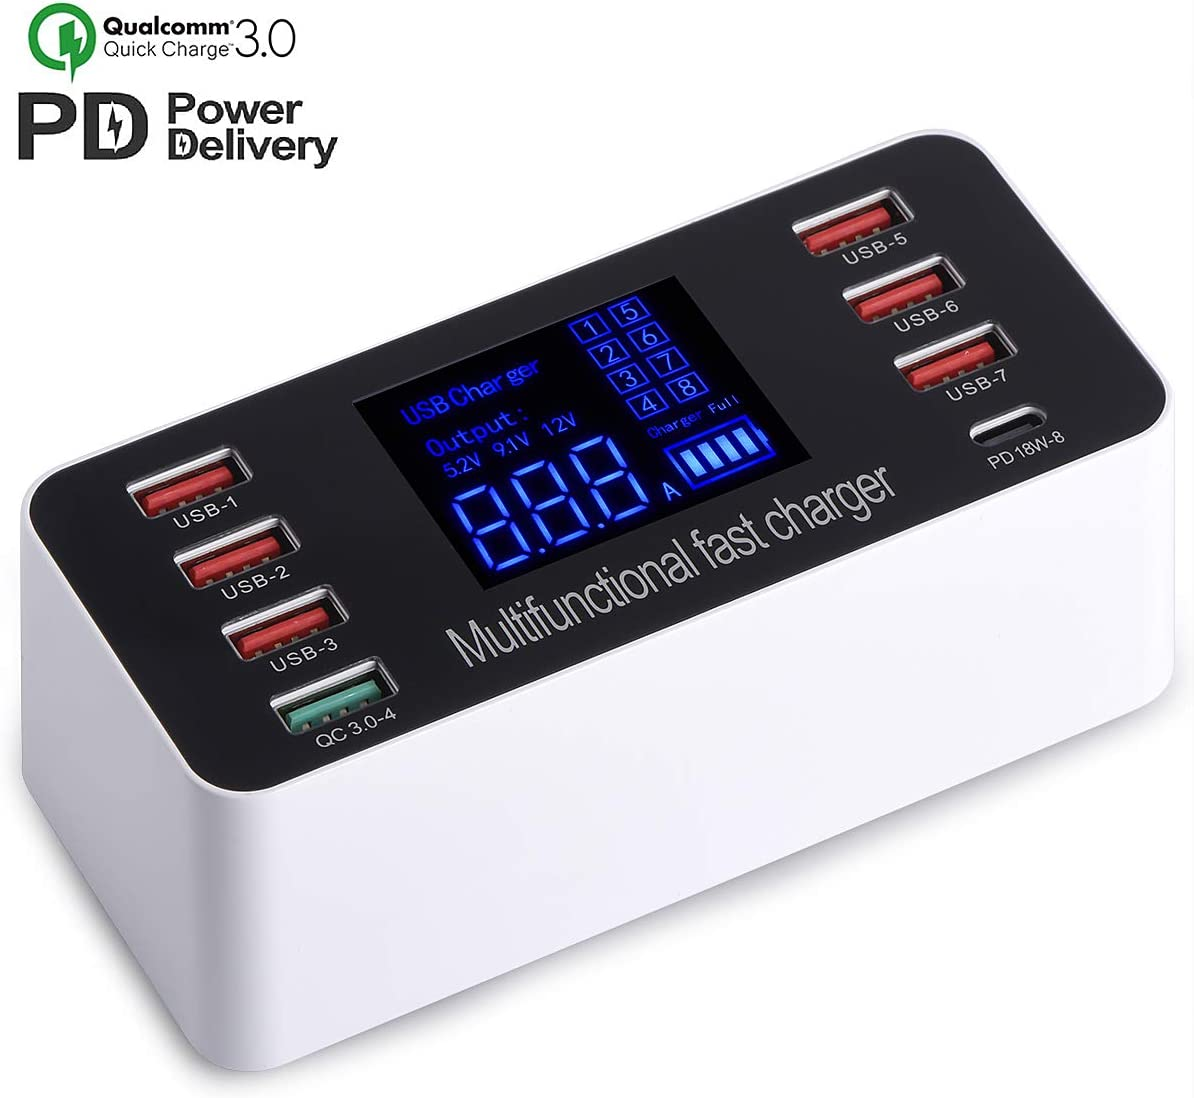 USB Wall Charger, Multiple 8-Port 60W Desktop Charging Station Hub with Quick Charge 3.0 USB Port, PD Fast Charger and LCD Display, Compatible with iOS & Android Devices for iPhone, iPad,